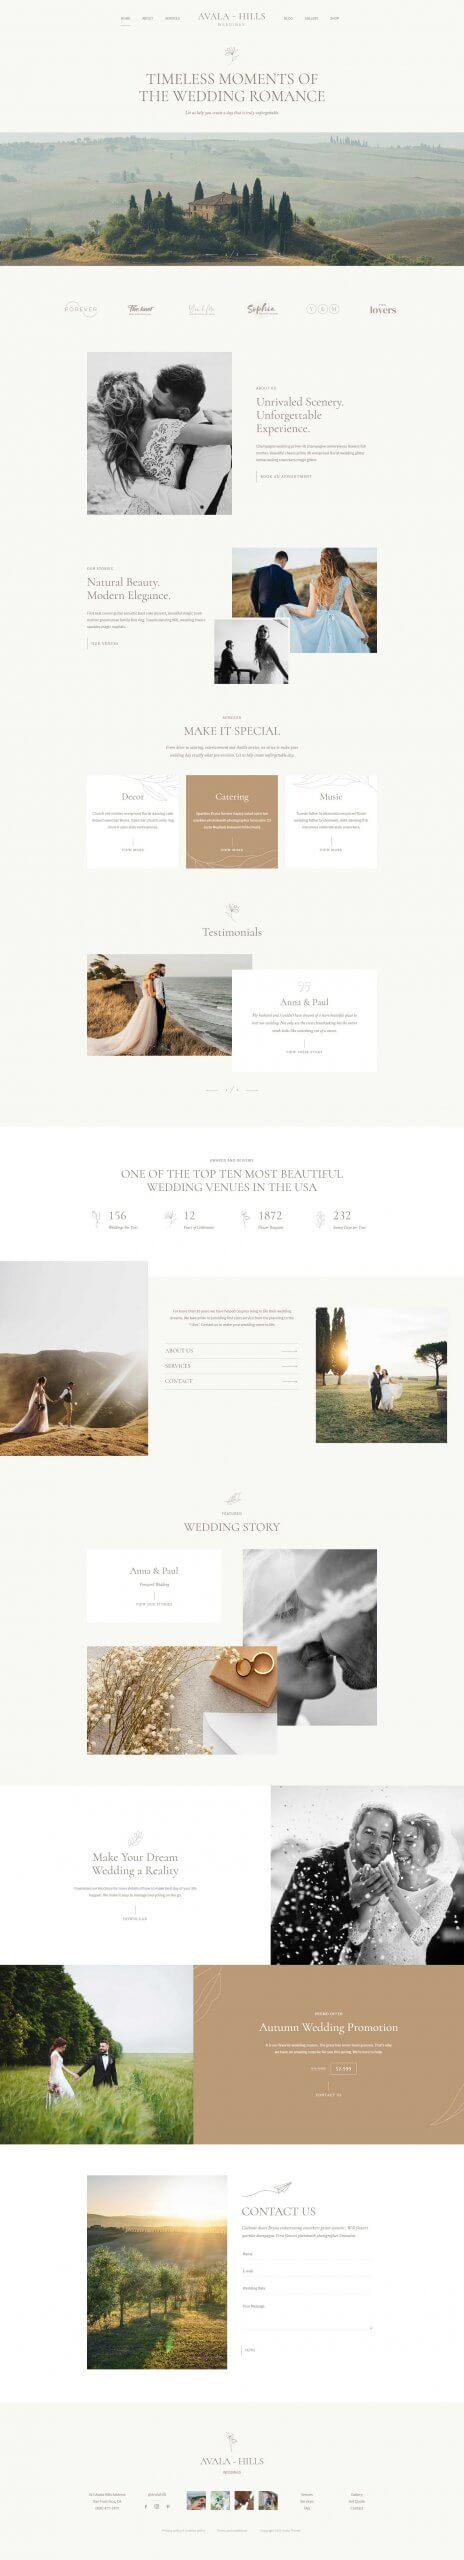 http://avala.bold-themes.com/wp-content/uploads/2021/02/Autumn-Home-01-scaled.jpg